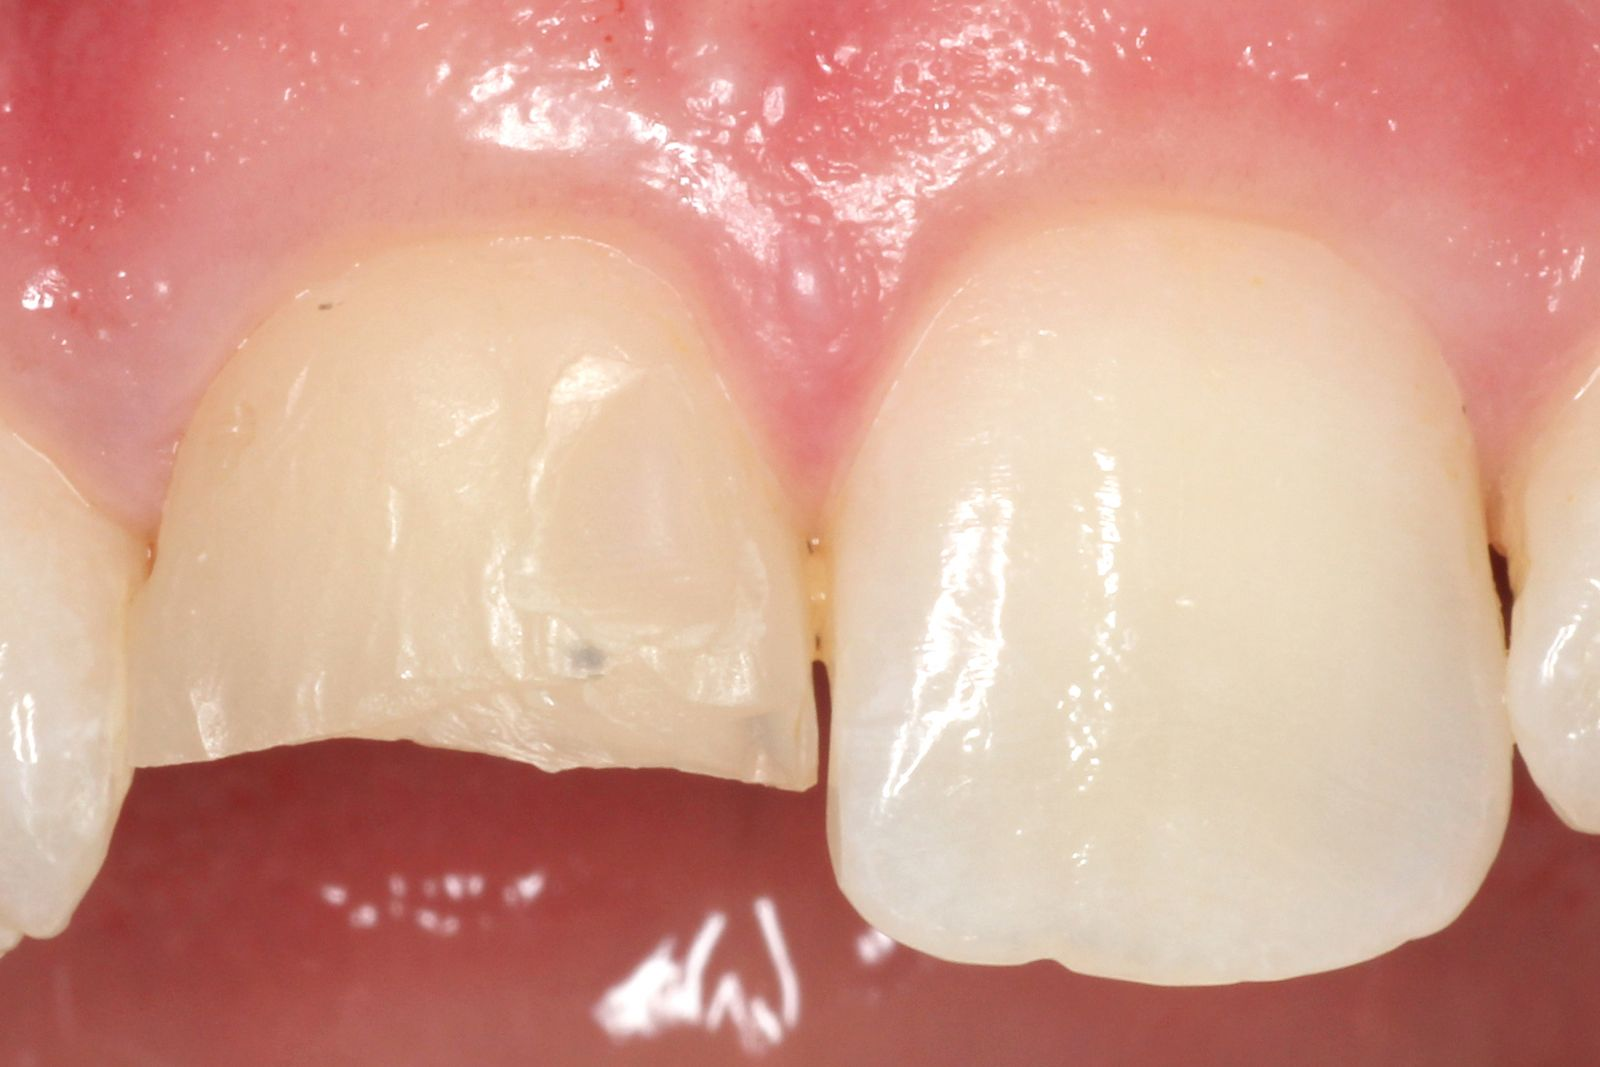 Before CEREC